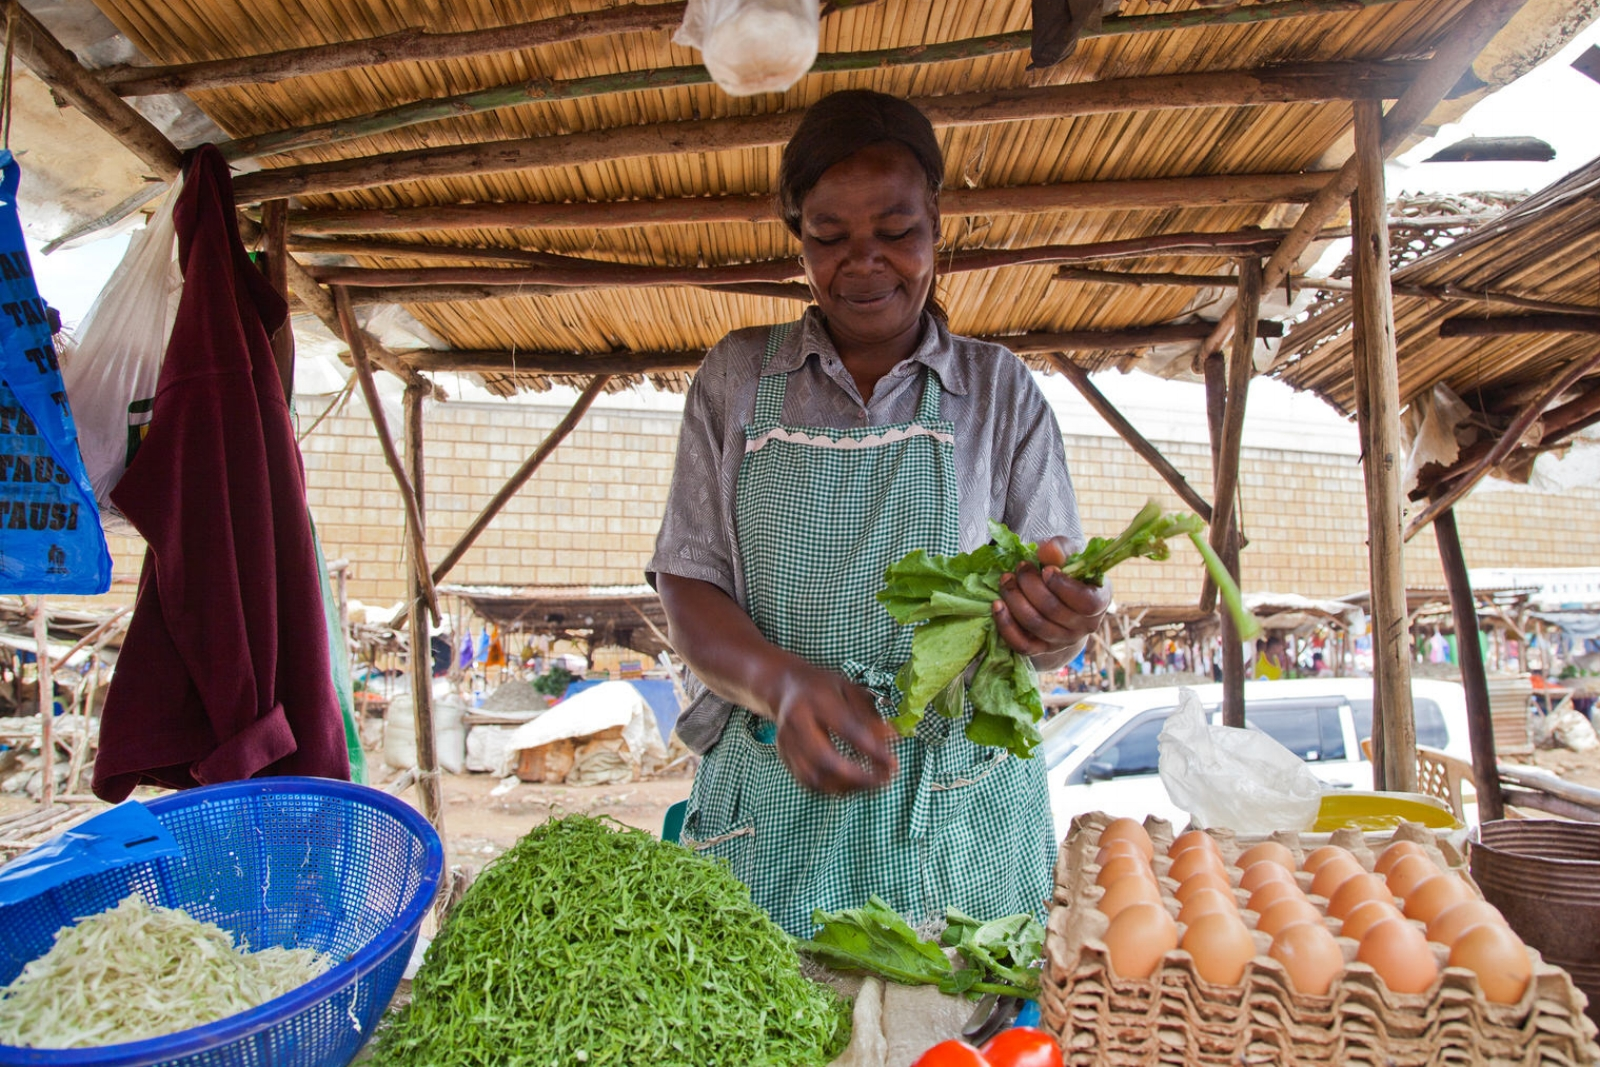 Mildred  is a widow living in Kisumu with one child. Mildred was able to establish a successful business. After her son's death, Mildred returned to Kisumu where her friend helped her secure a space in the market.